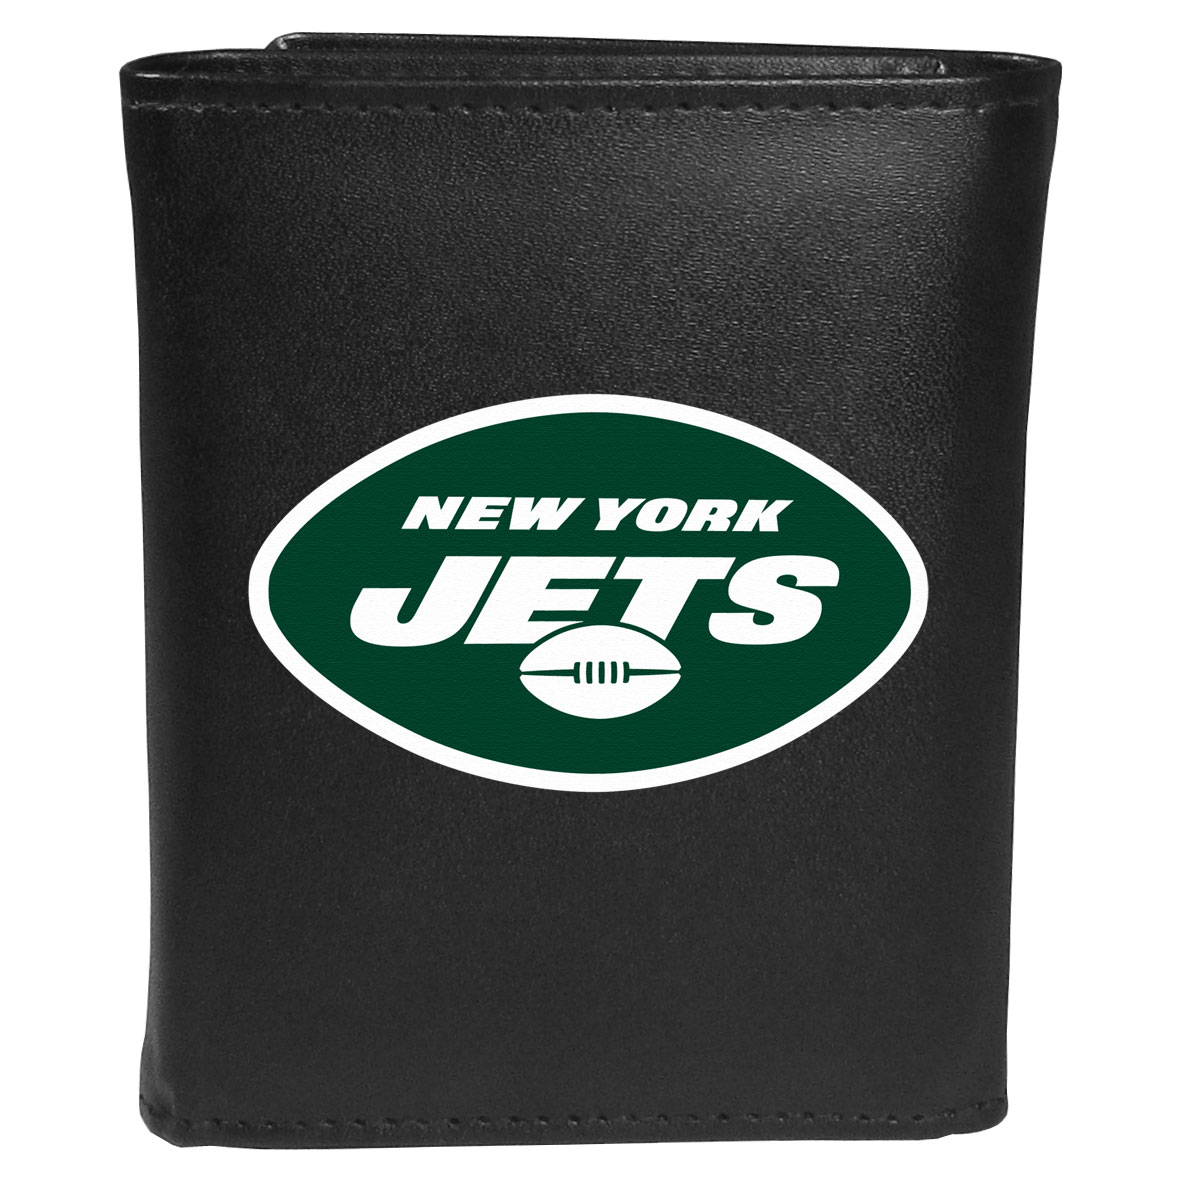 New York Jets Leather Tri-fold Wallet, Large Logo - Our classic fine leather tri-fold wallet is meticulously crafted with genuine leather that will age beautifully so you will have a quality wallet for years to come. This is fan apparel at its finest. The wallet is packed with organizational  features; lots of credit card slots, large billfold pocket, and a window ID slot. The front of the wallet features an extra large New York Jets printed logo.